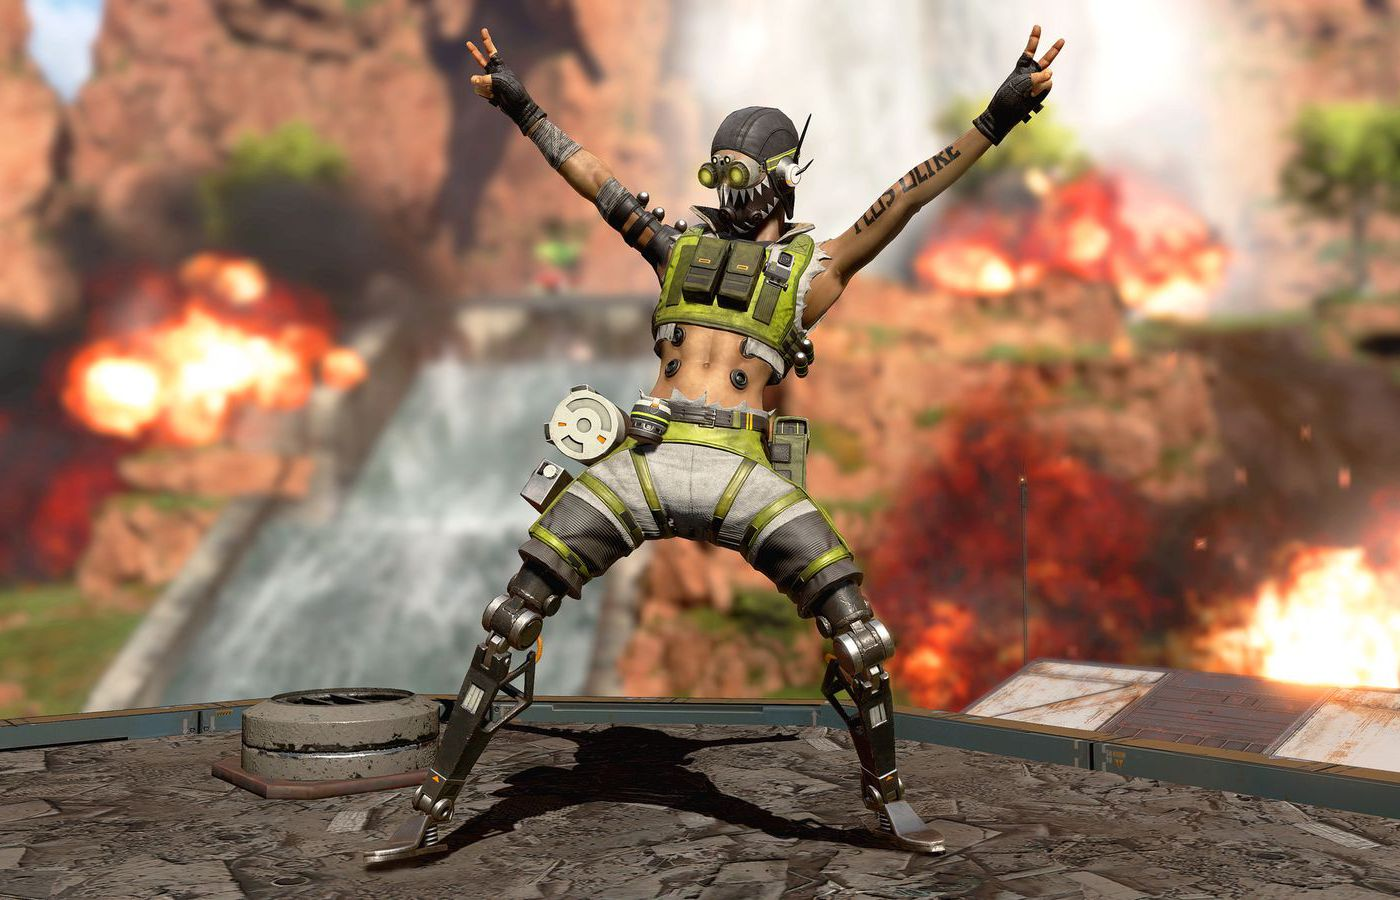 The first Apex Legends battle pass launches tomorrow with